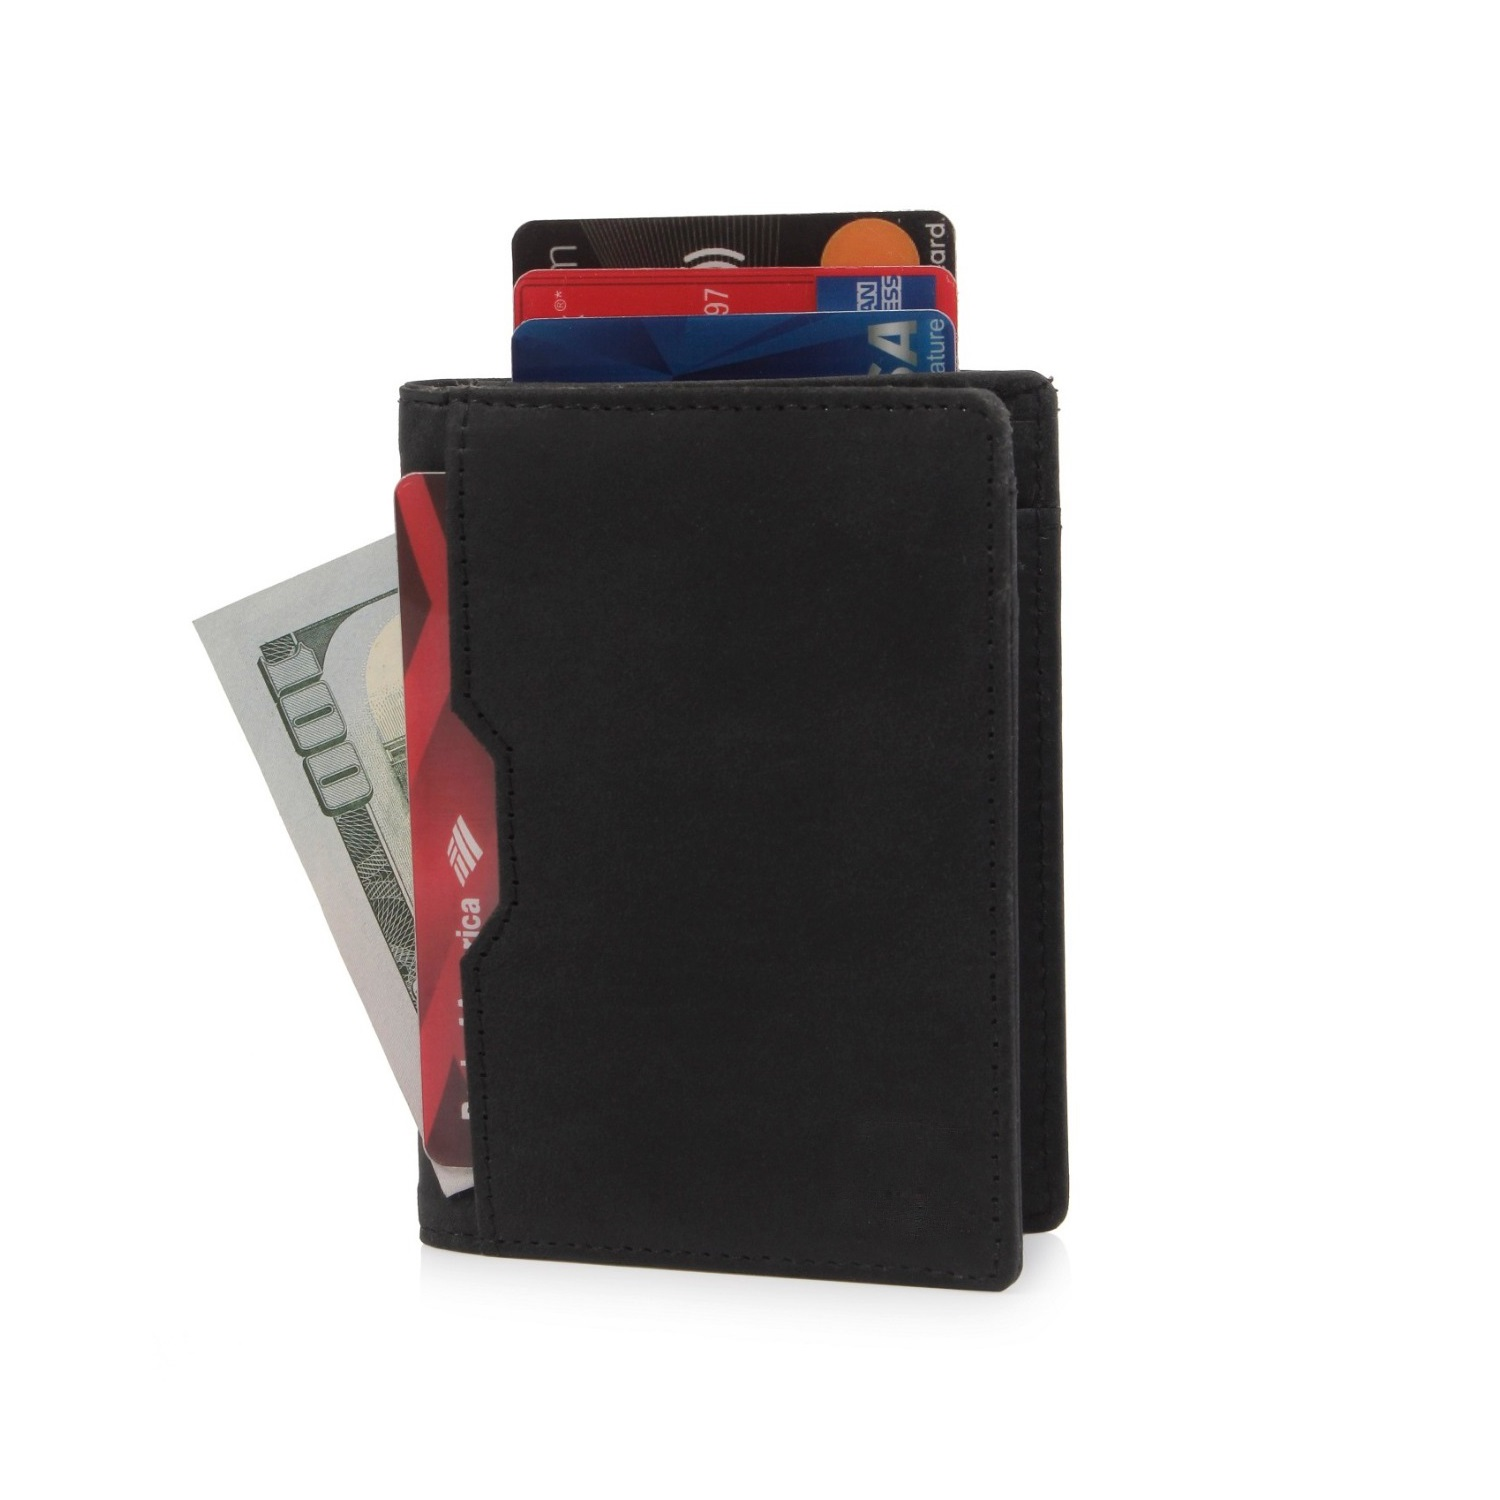 Leather Wallets Manufacturers in Venezuela, Leather Wallets Suppliers in Venezuela, Leather Wallets Wholesalers in Venezuela, Leather Wallets Traders in Venezuela